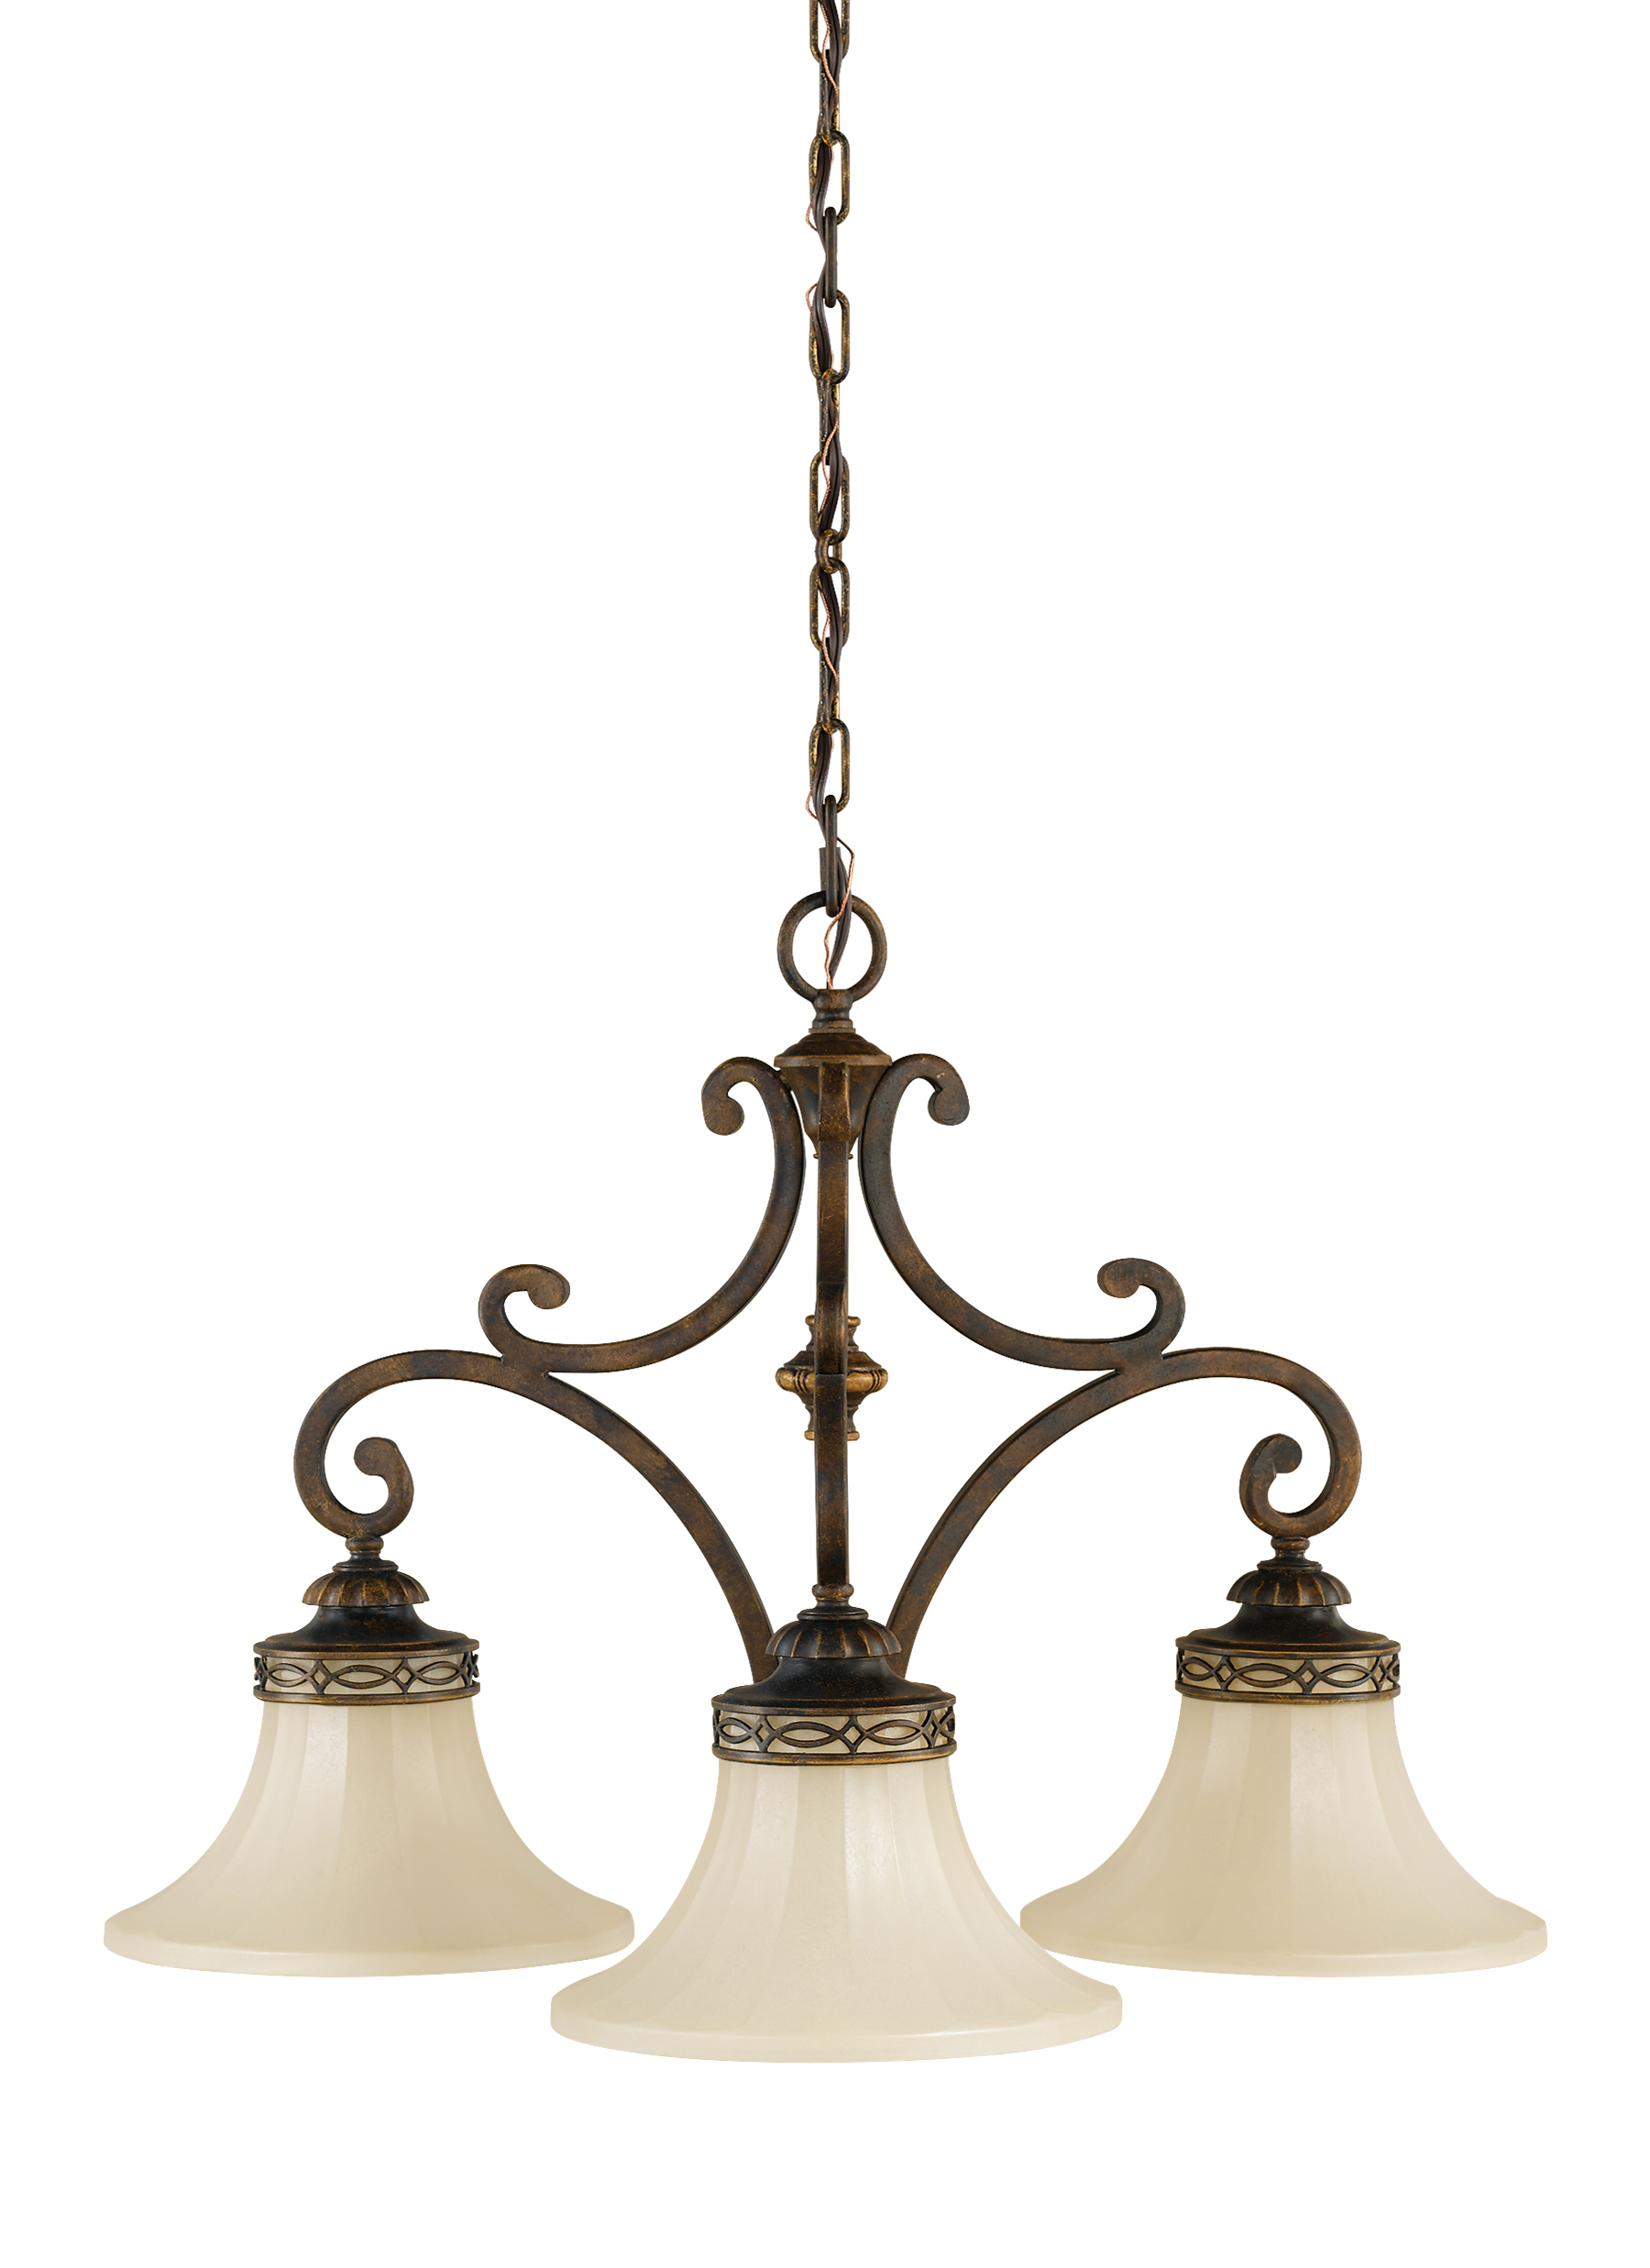 F22193WAL3 Light Kitchen ChandelierWalnut